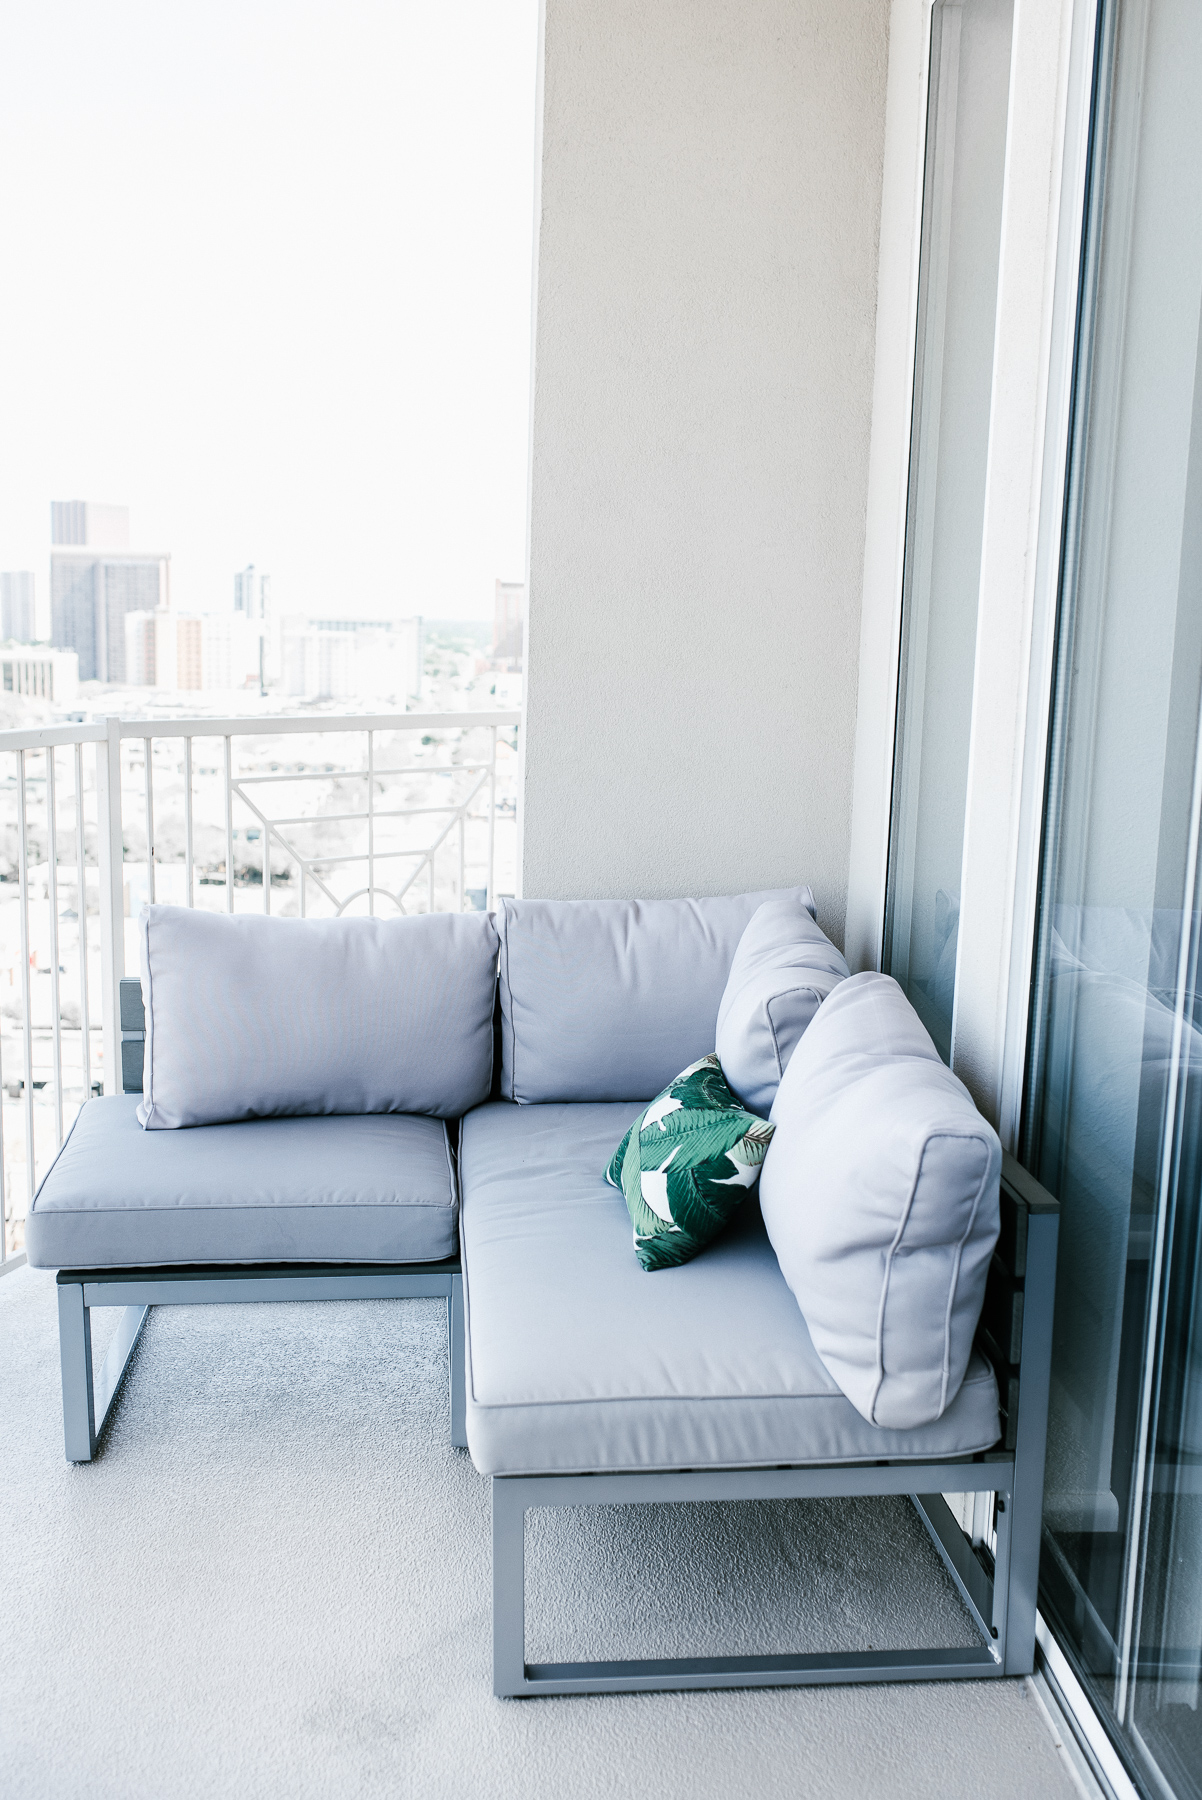 Welcome to my Happy Place, Dress Up Buttercup, Dede Raad, Houston Blogger, Fashion blogger, Patio Furniture,Gray outdoor seating, palm leaf pillow, ripped jeans, cute puppy